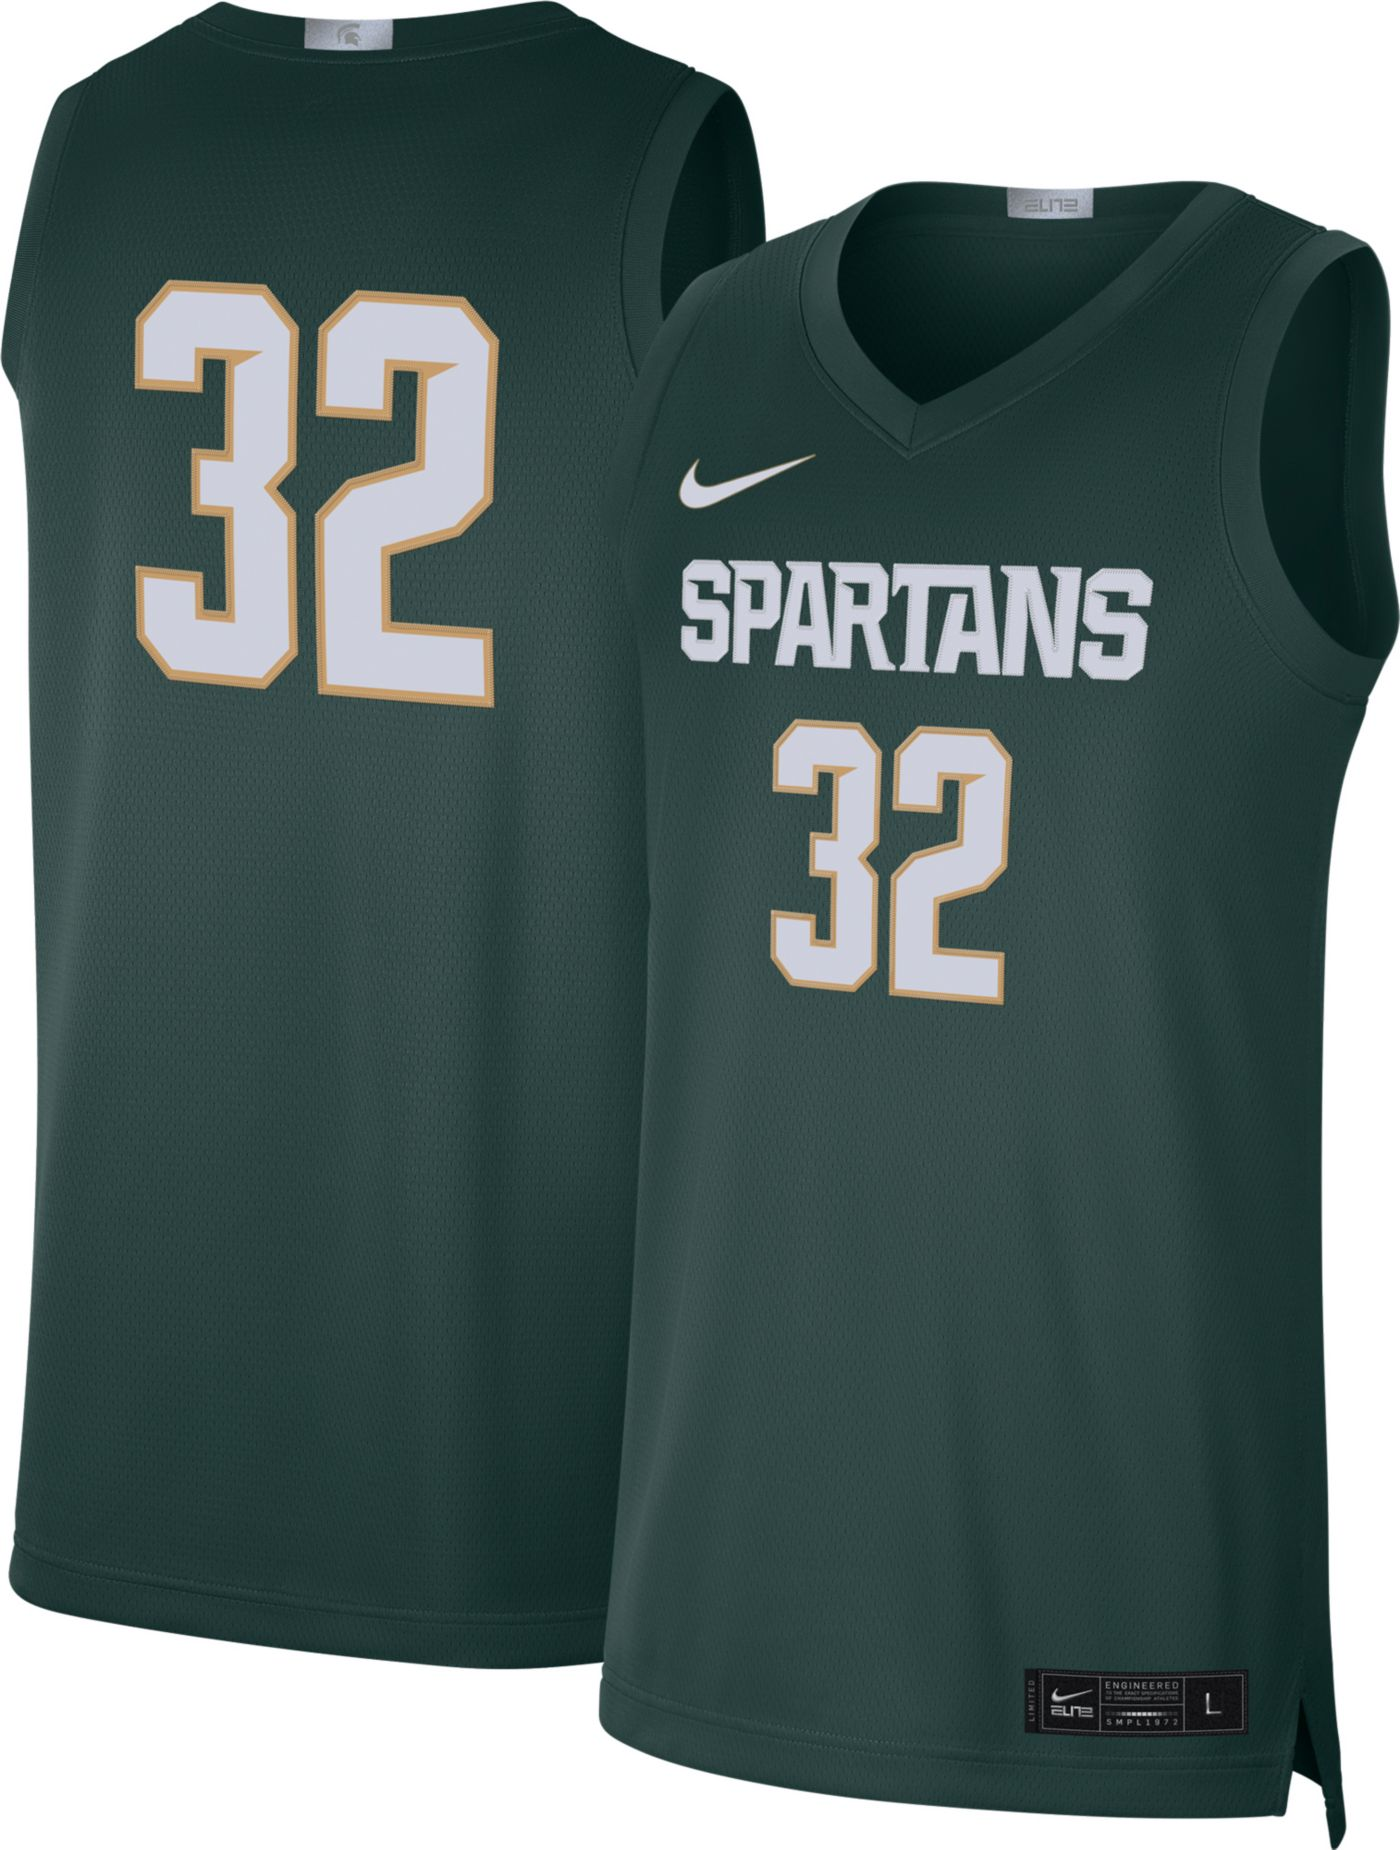 Nike Men's Michigan State Spartans #32 Green Limited Basketball Jersey